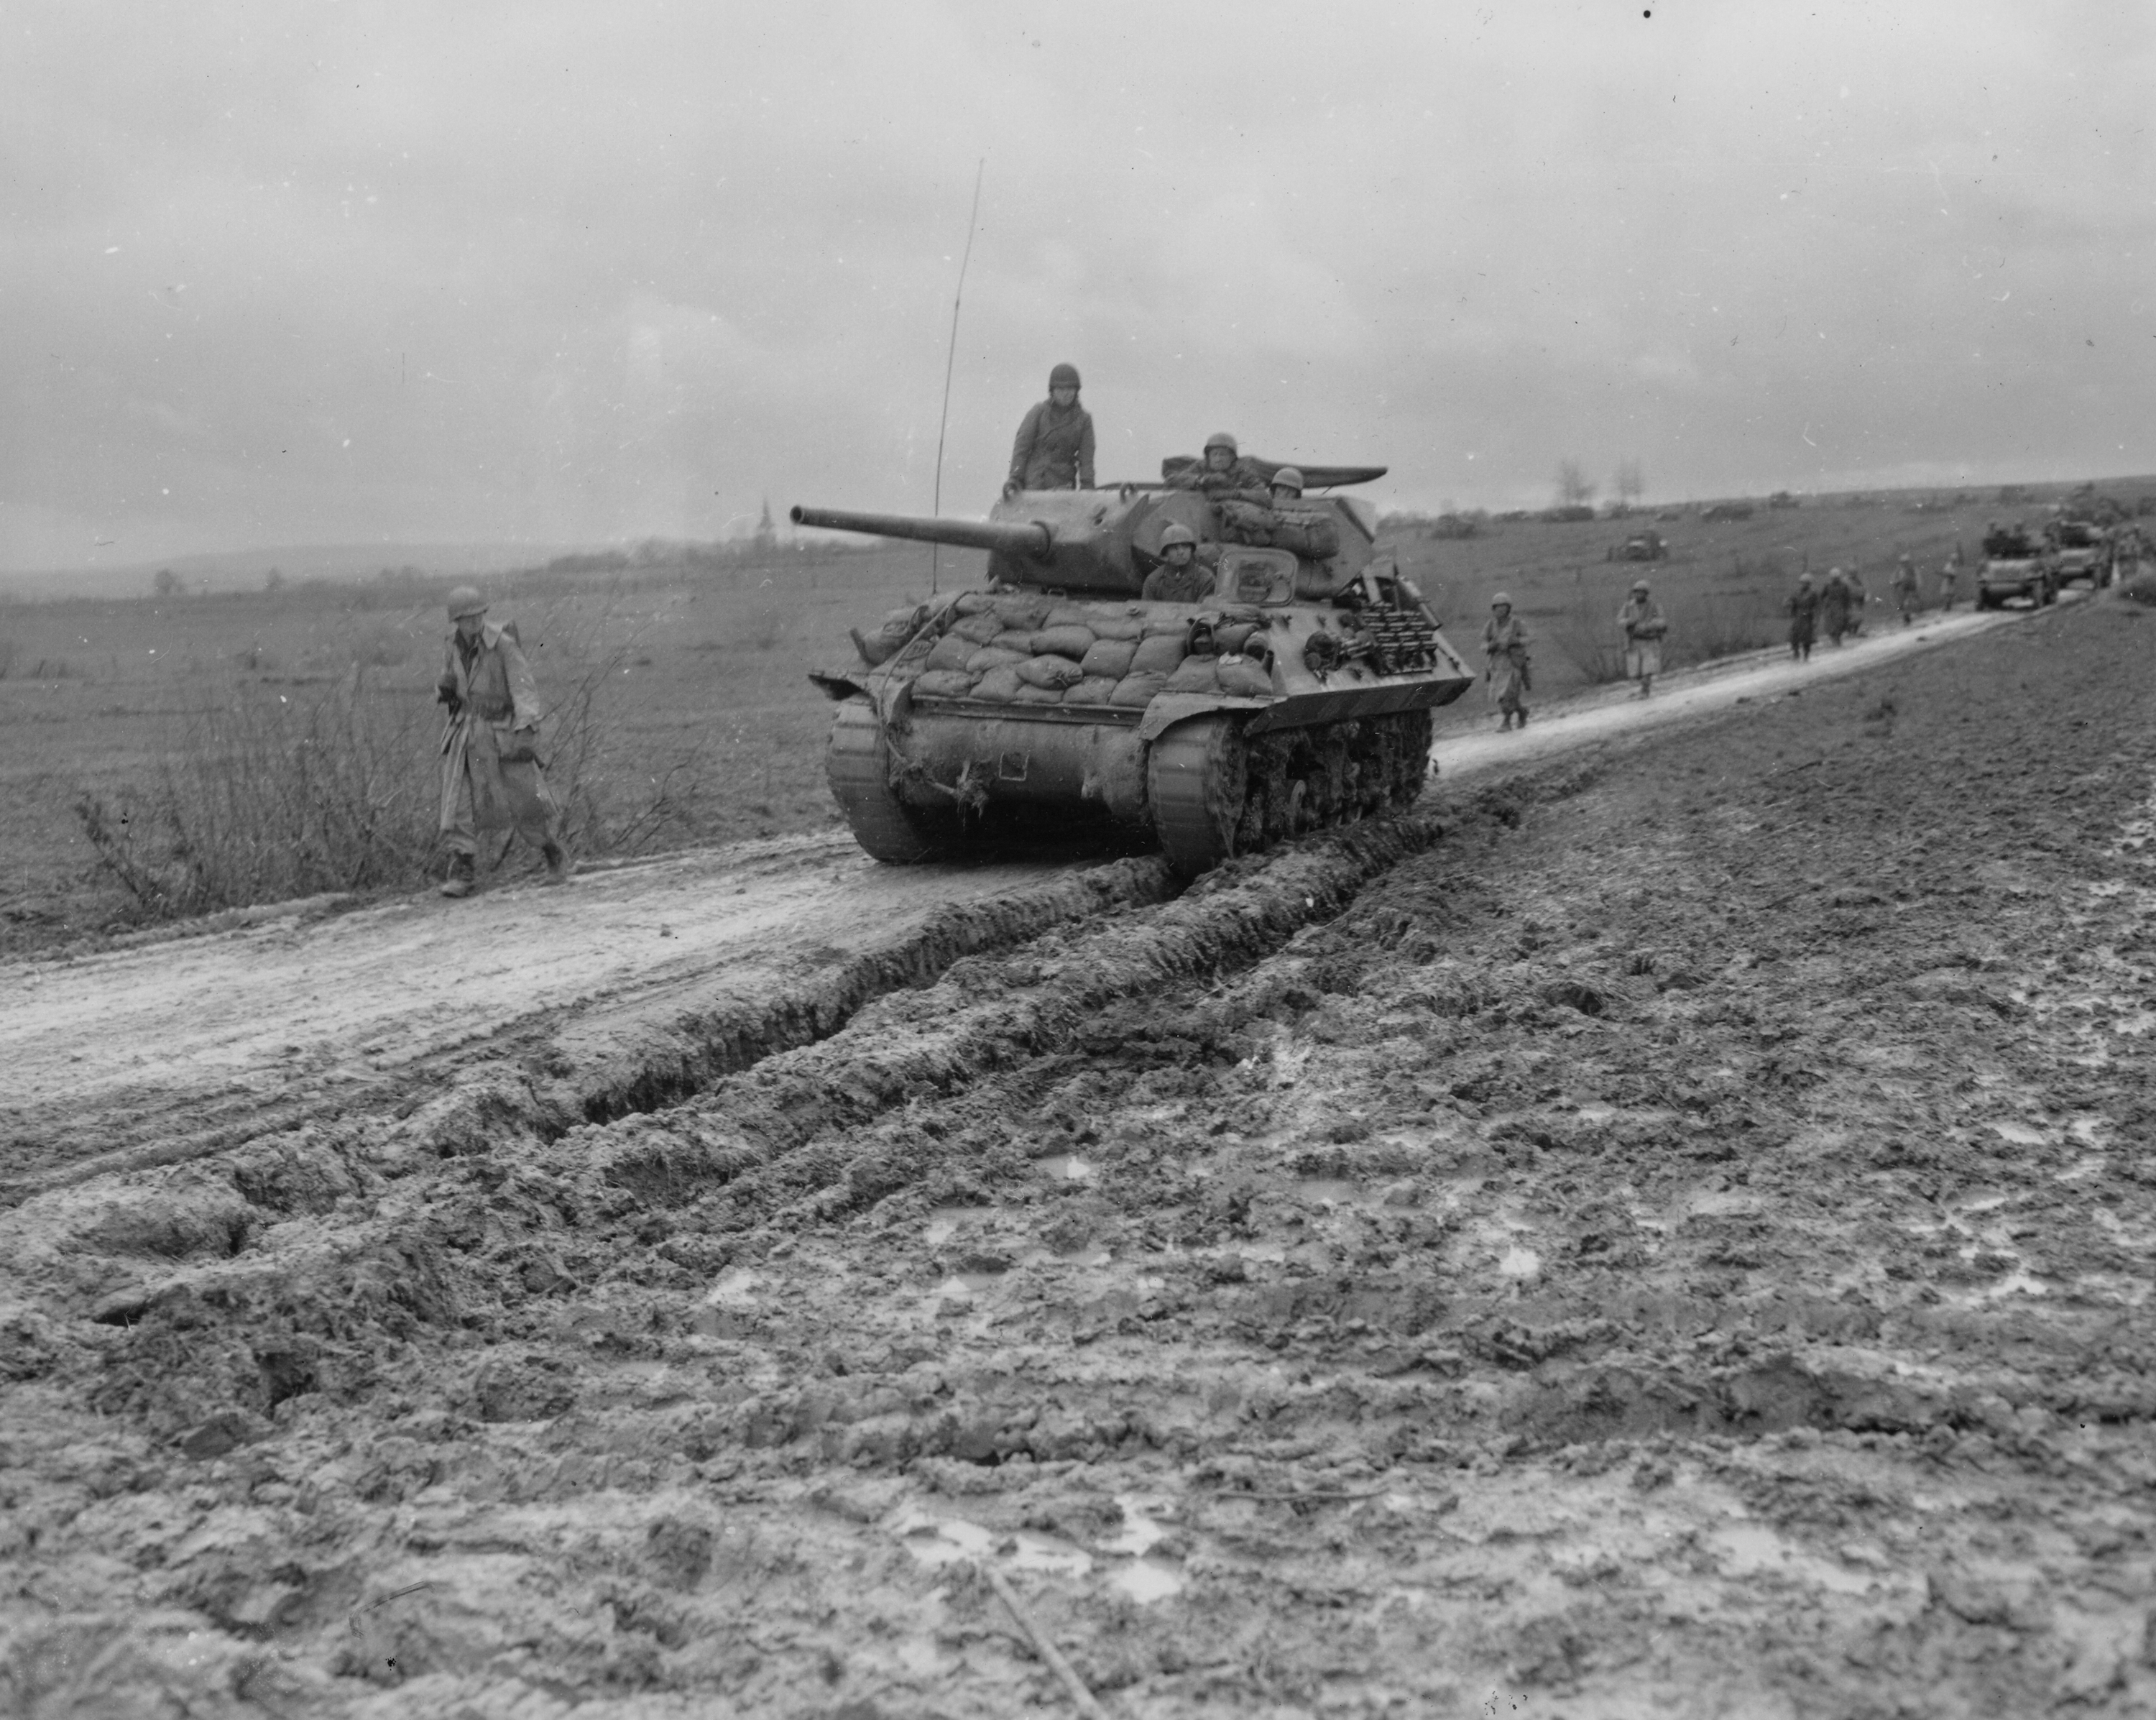 2nd-french-armored-div-m10-halloville-france-nov-13-44570 (1)